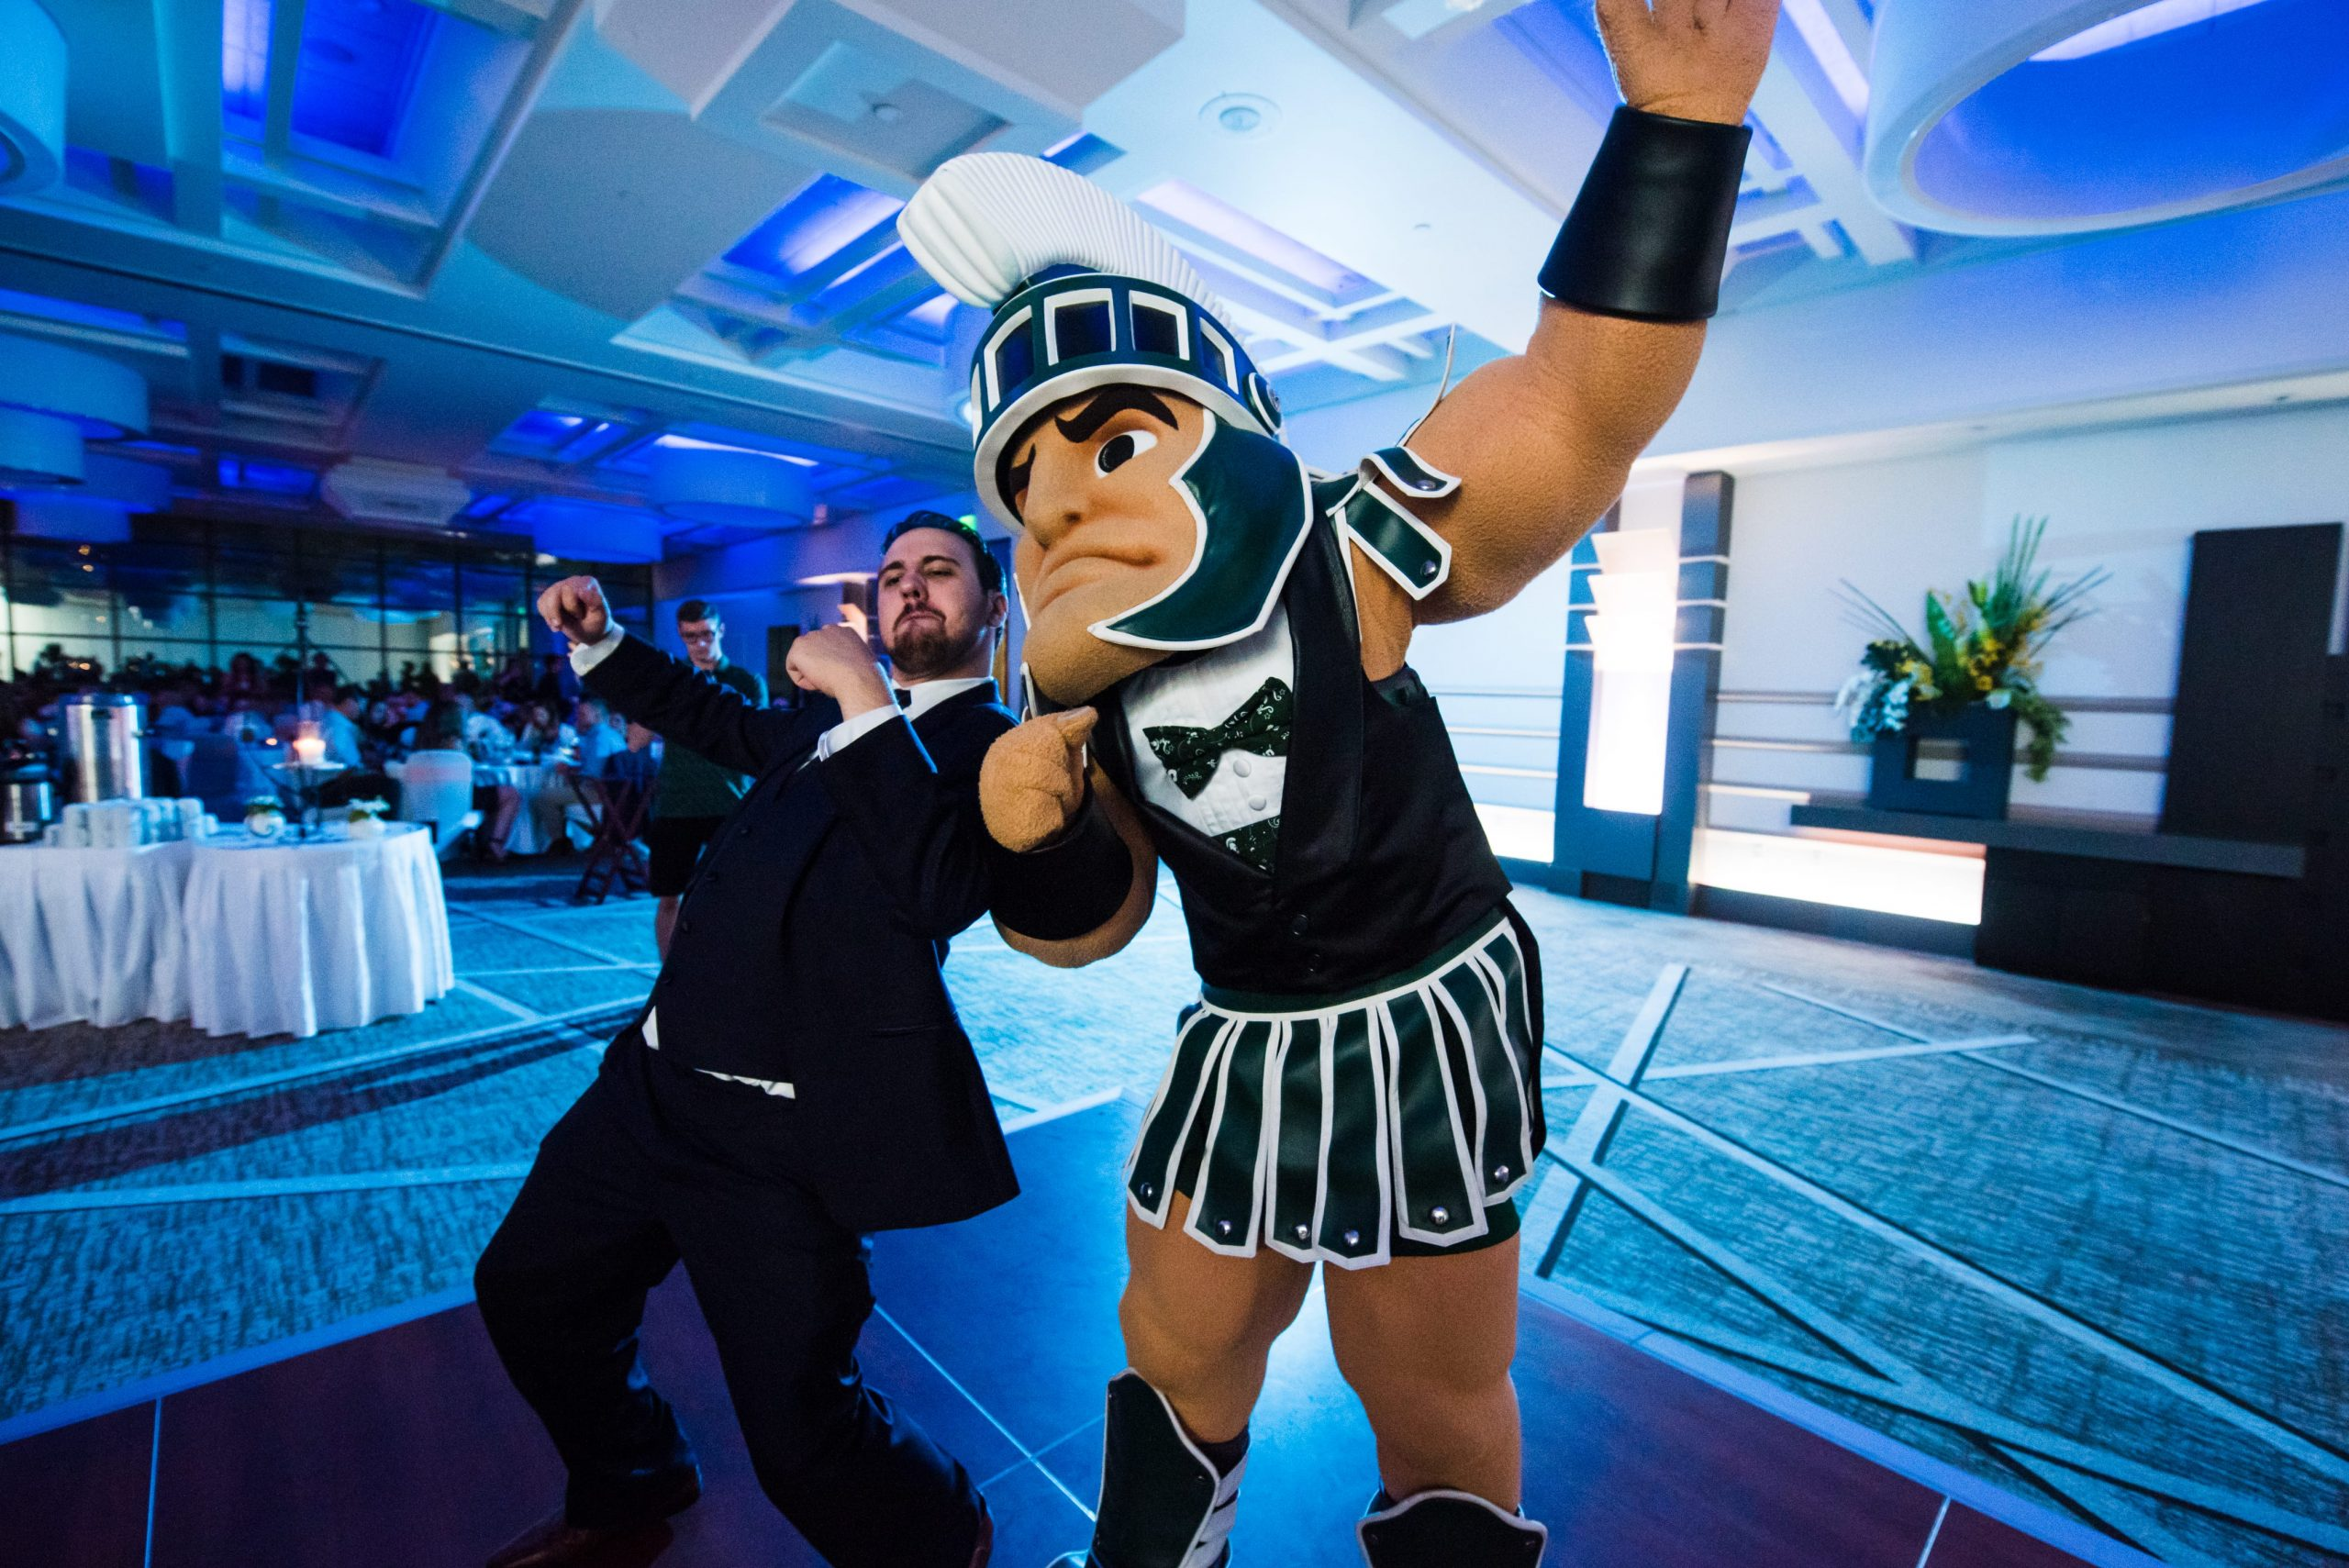 Sparty and groom at wedding reception